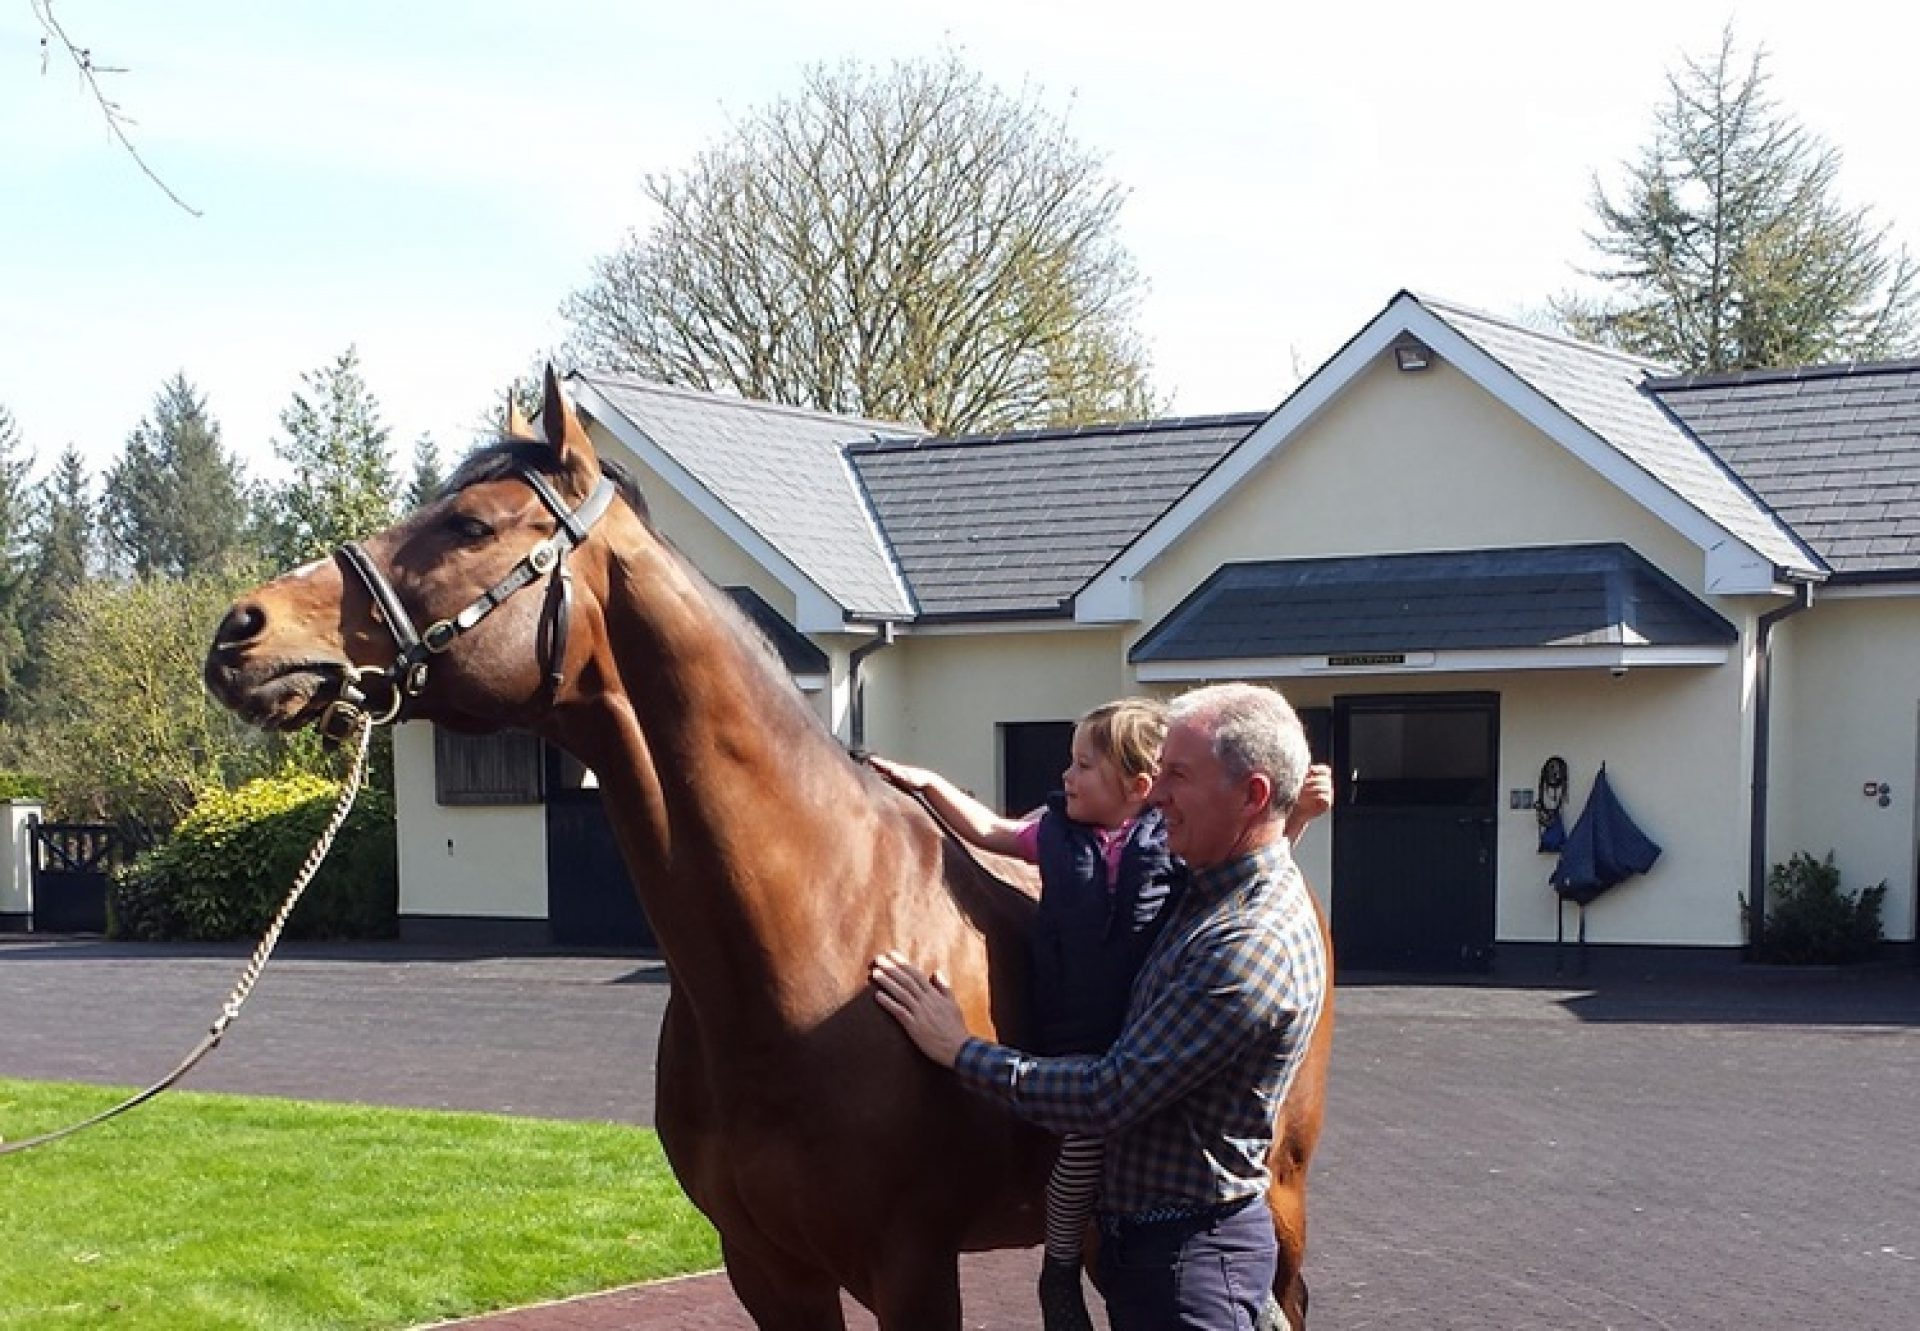 Colm Santry pictured with Galileo